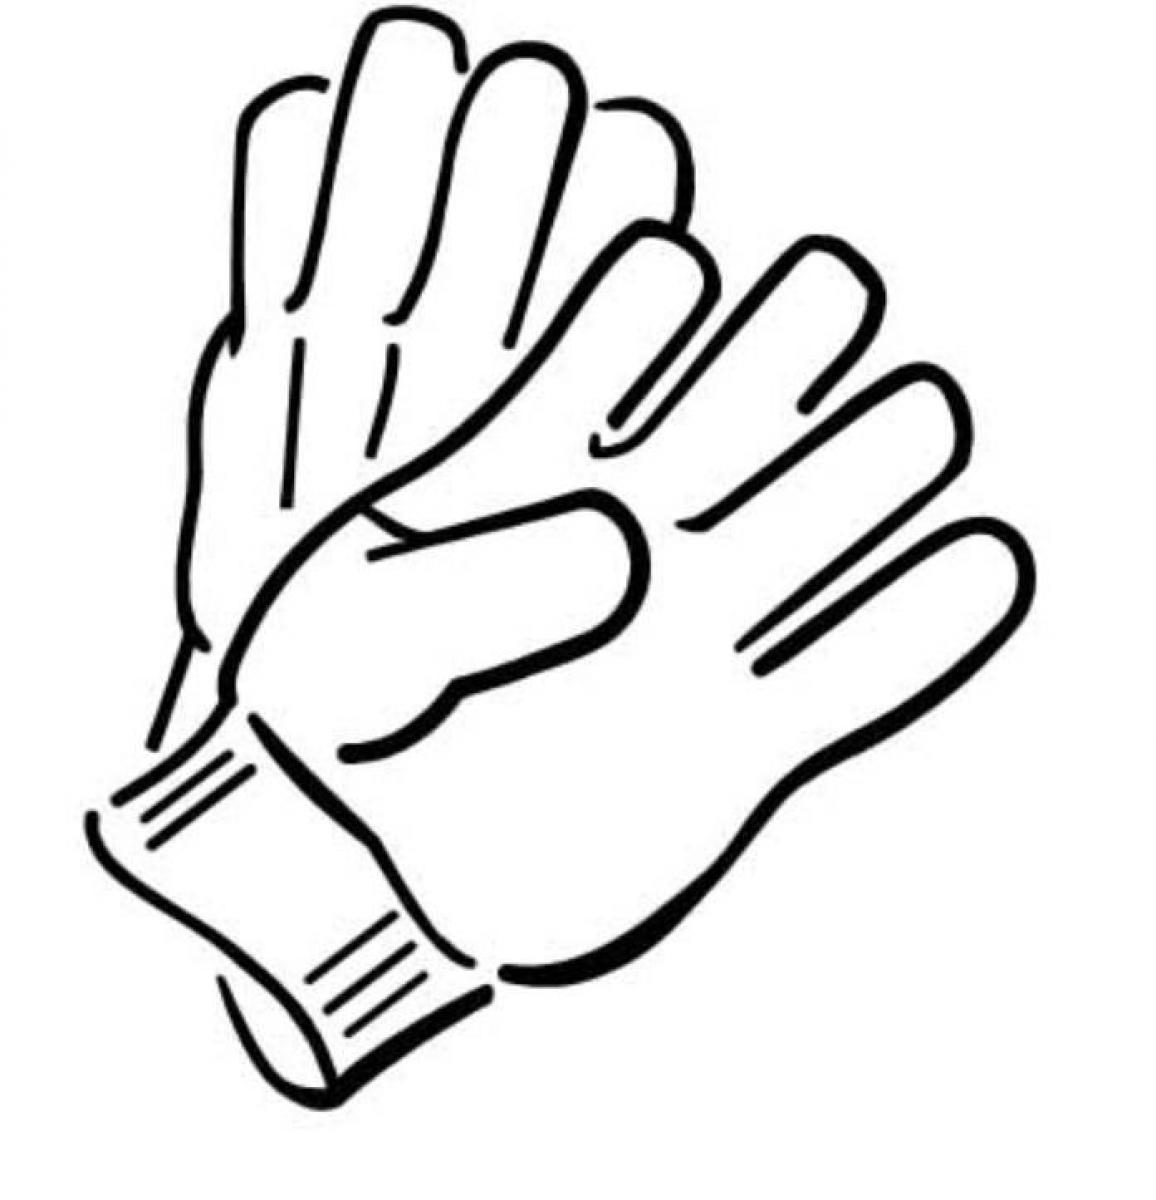 Gloves coloring pages clipart best for Coloring pages of mittens and gloves